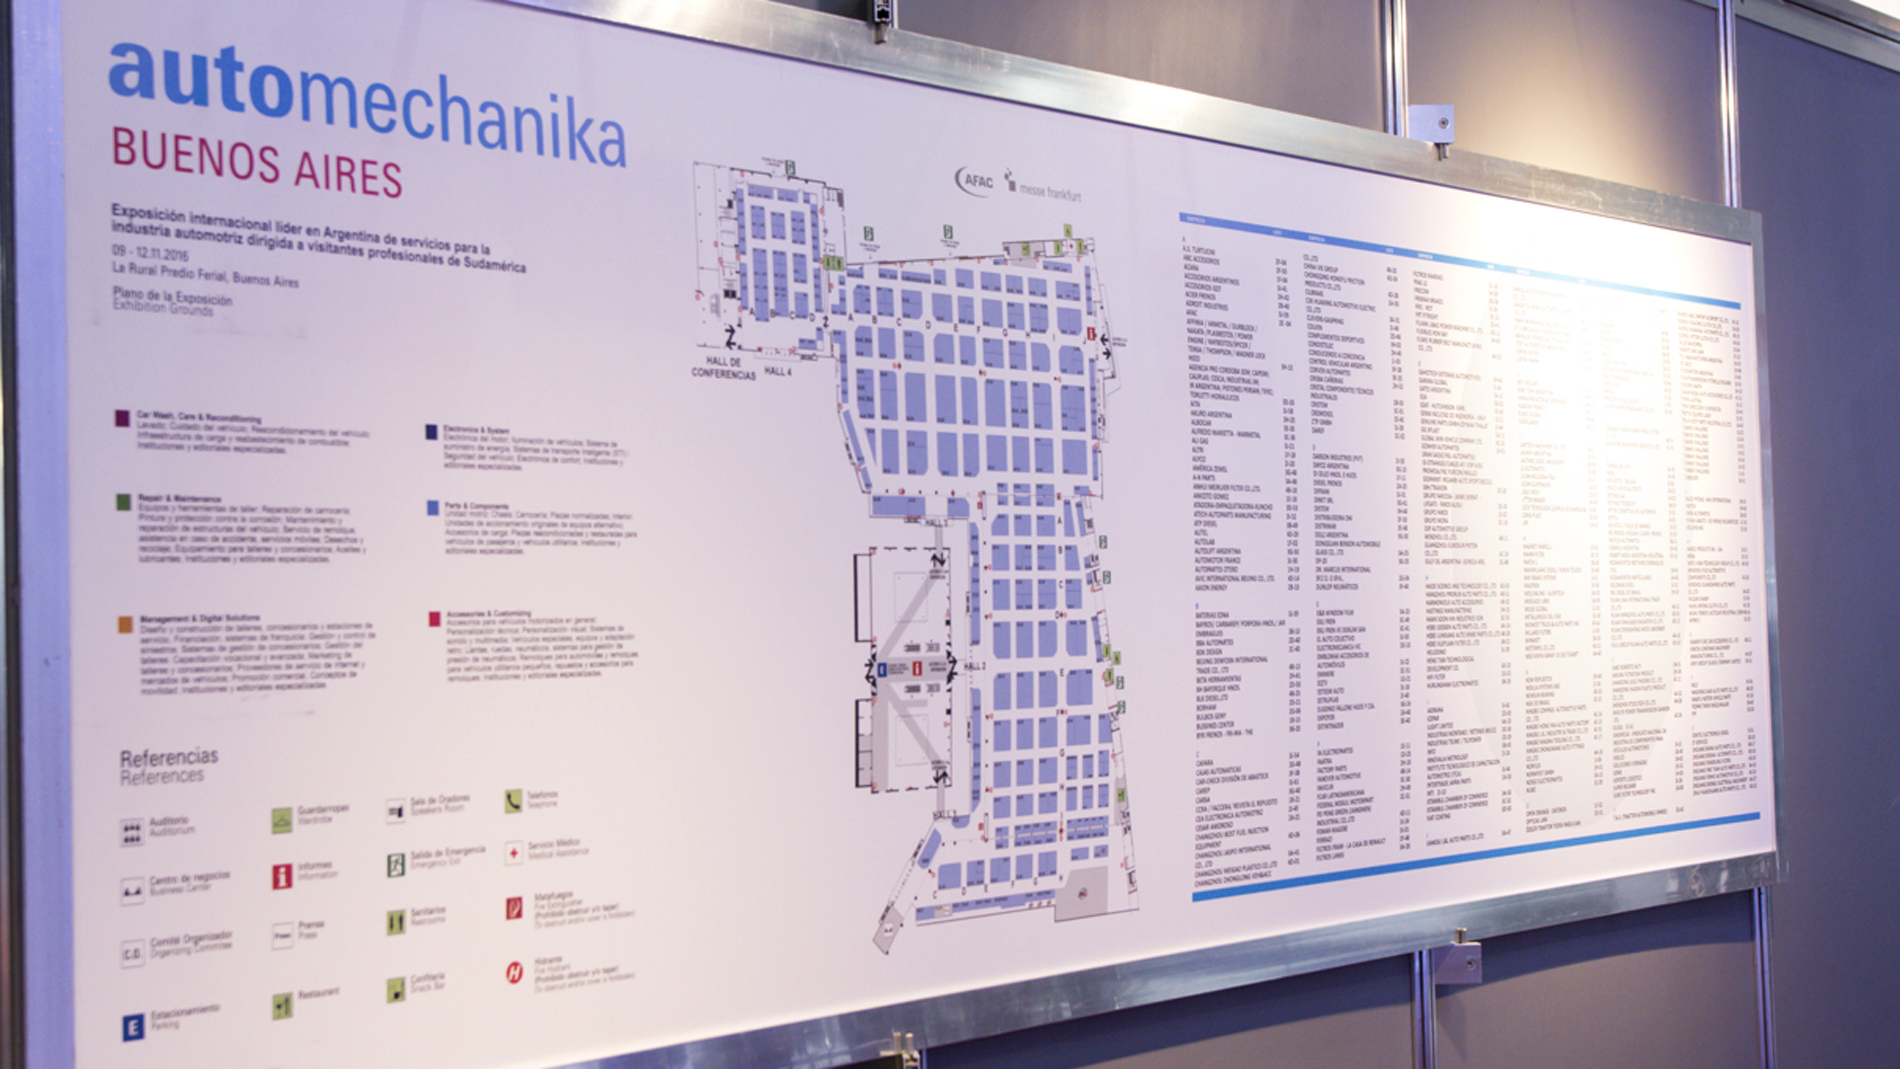 Automechanika Buenos Aires: exhibition ground